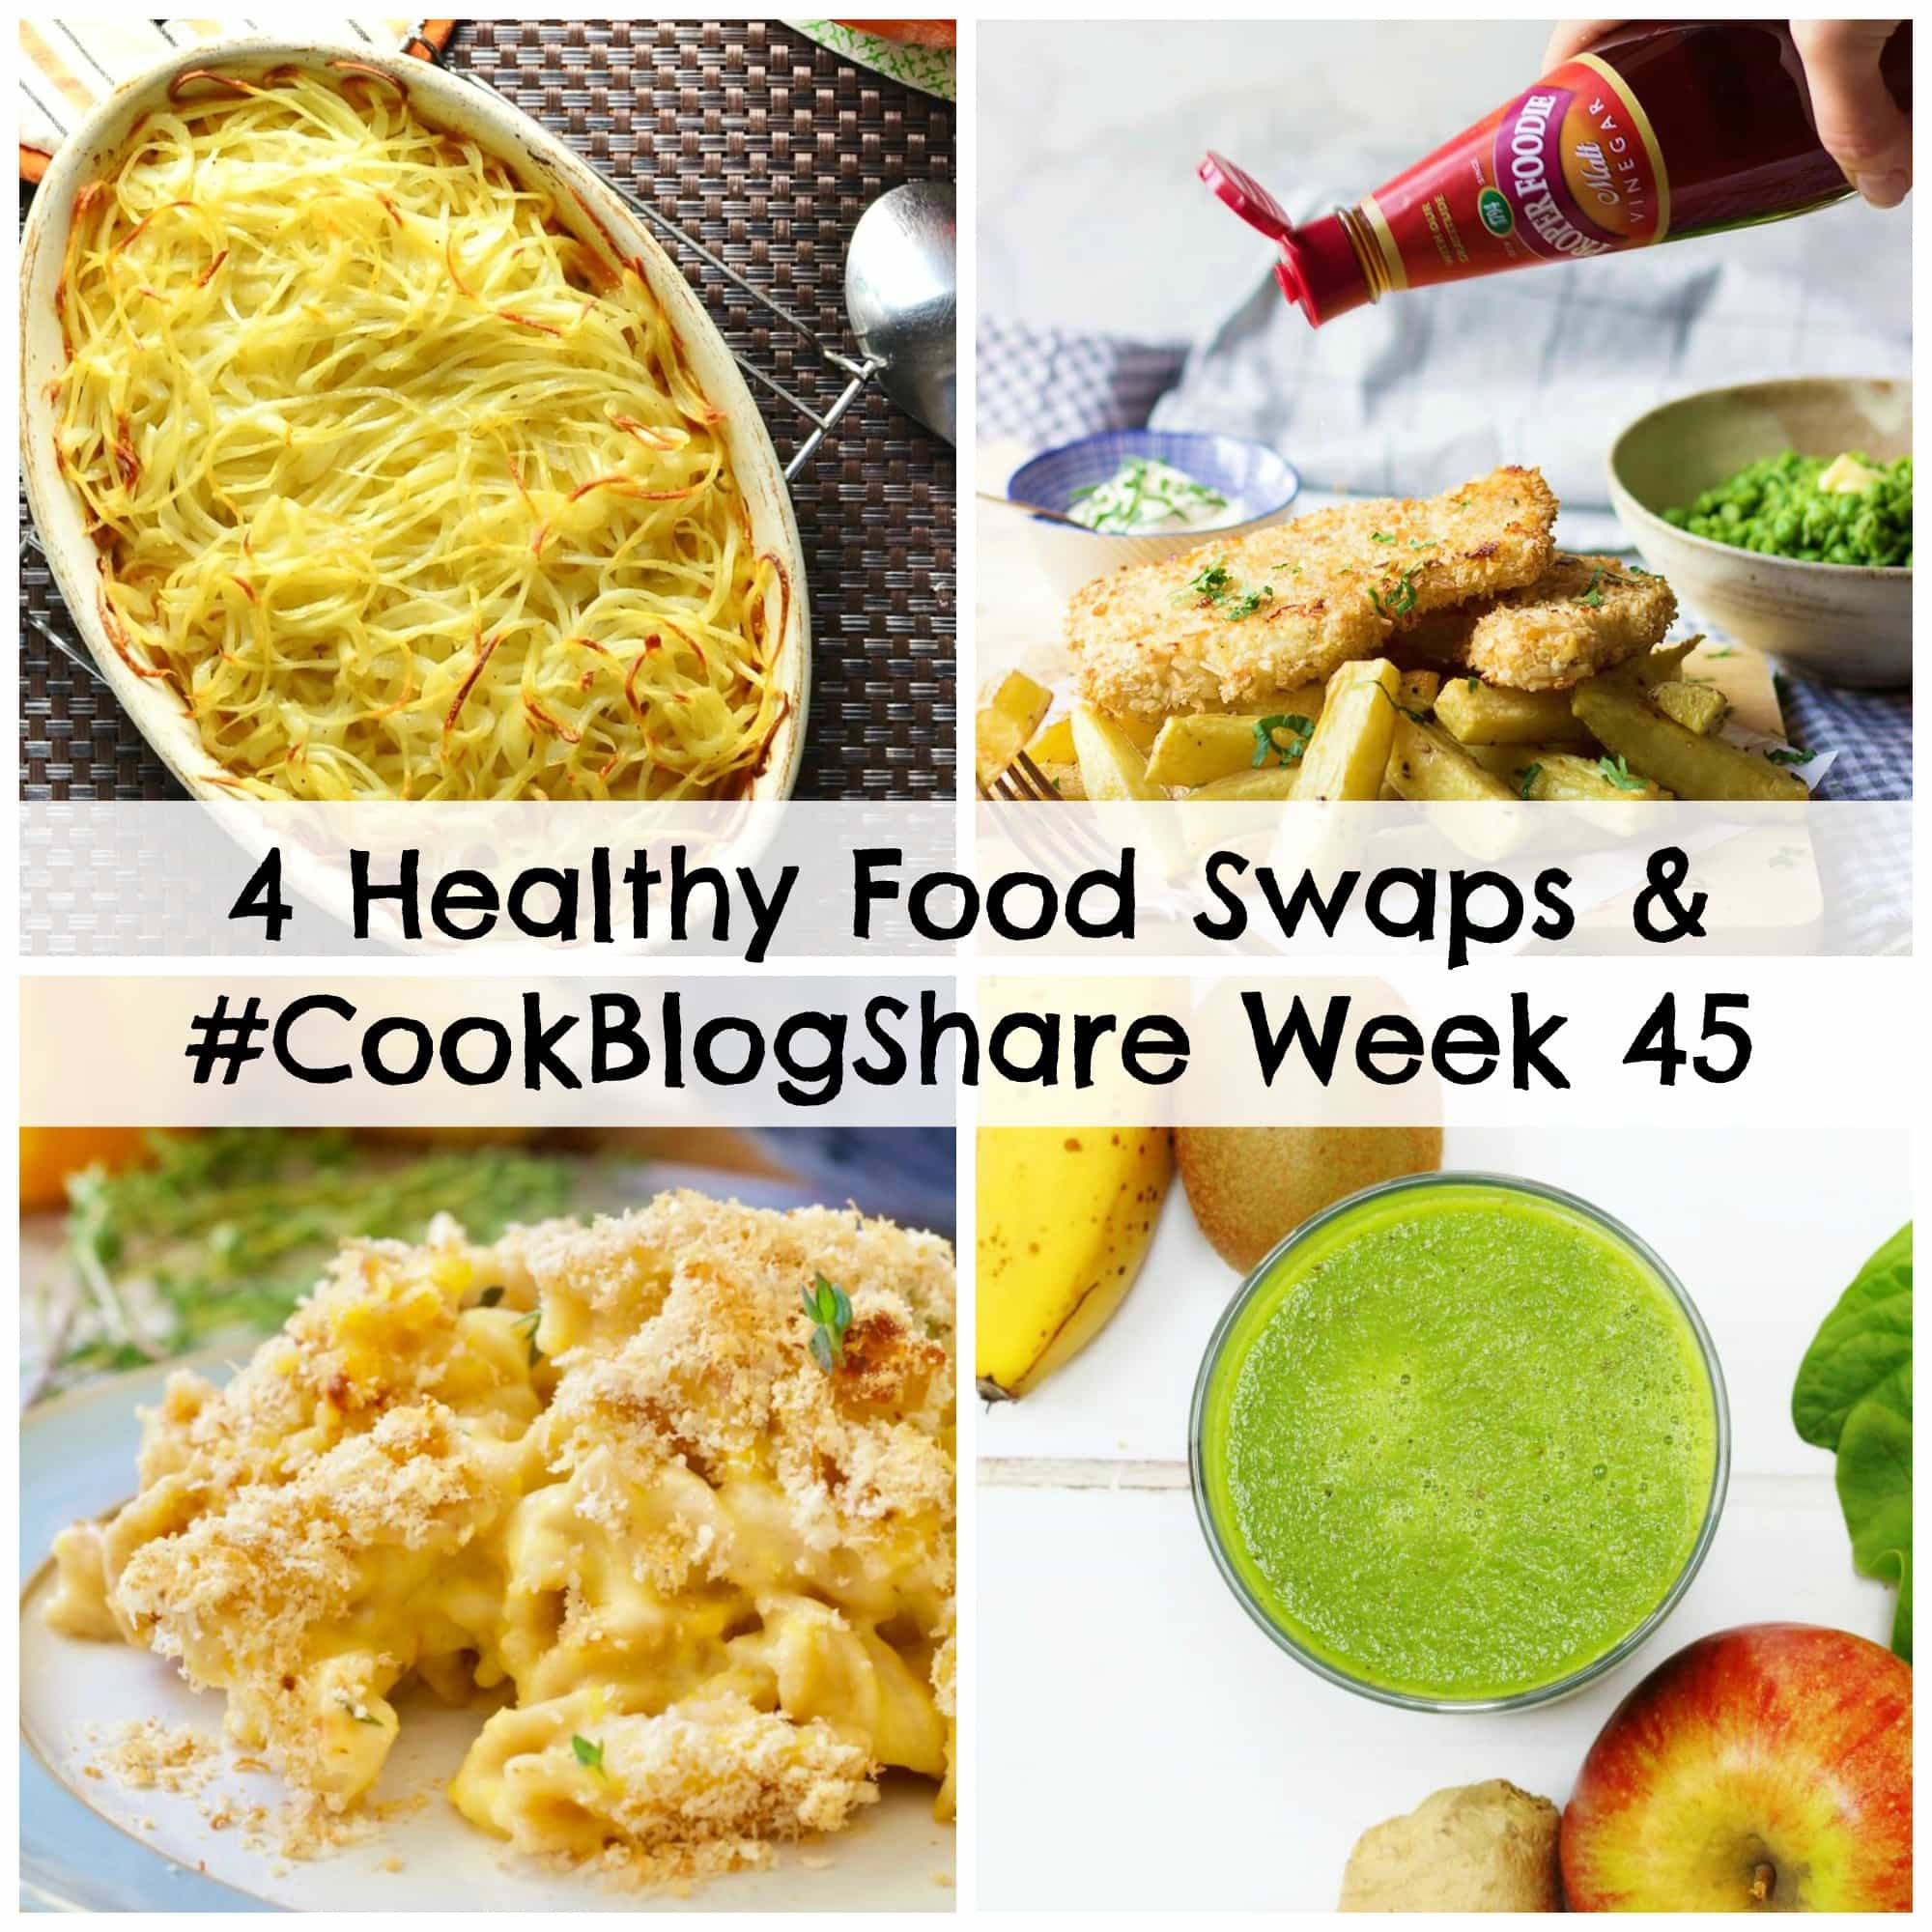 30 Stress Free Easy Camping Food Ideas Your Family Will: 4 Healthy Food Swaps And #CookBlogShare Week 45